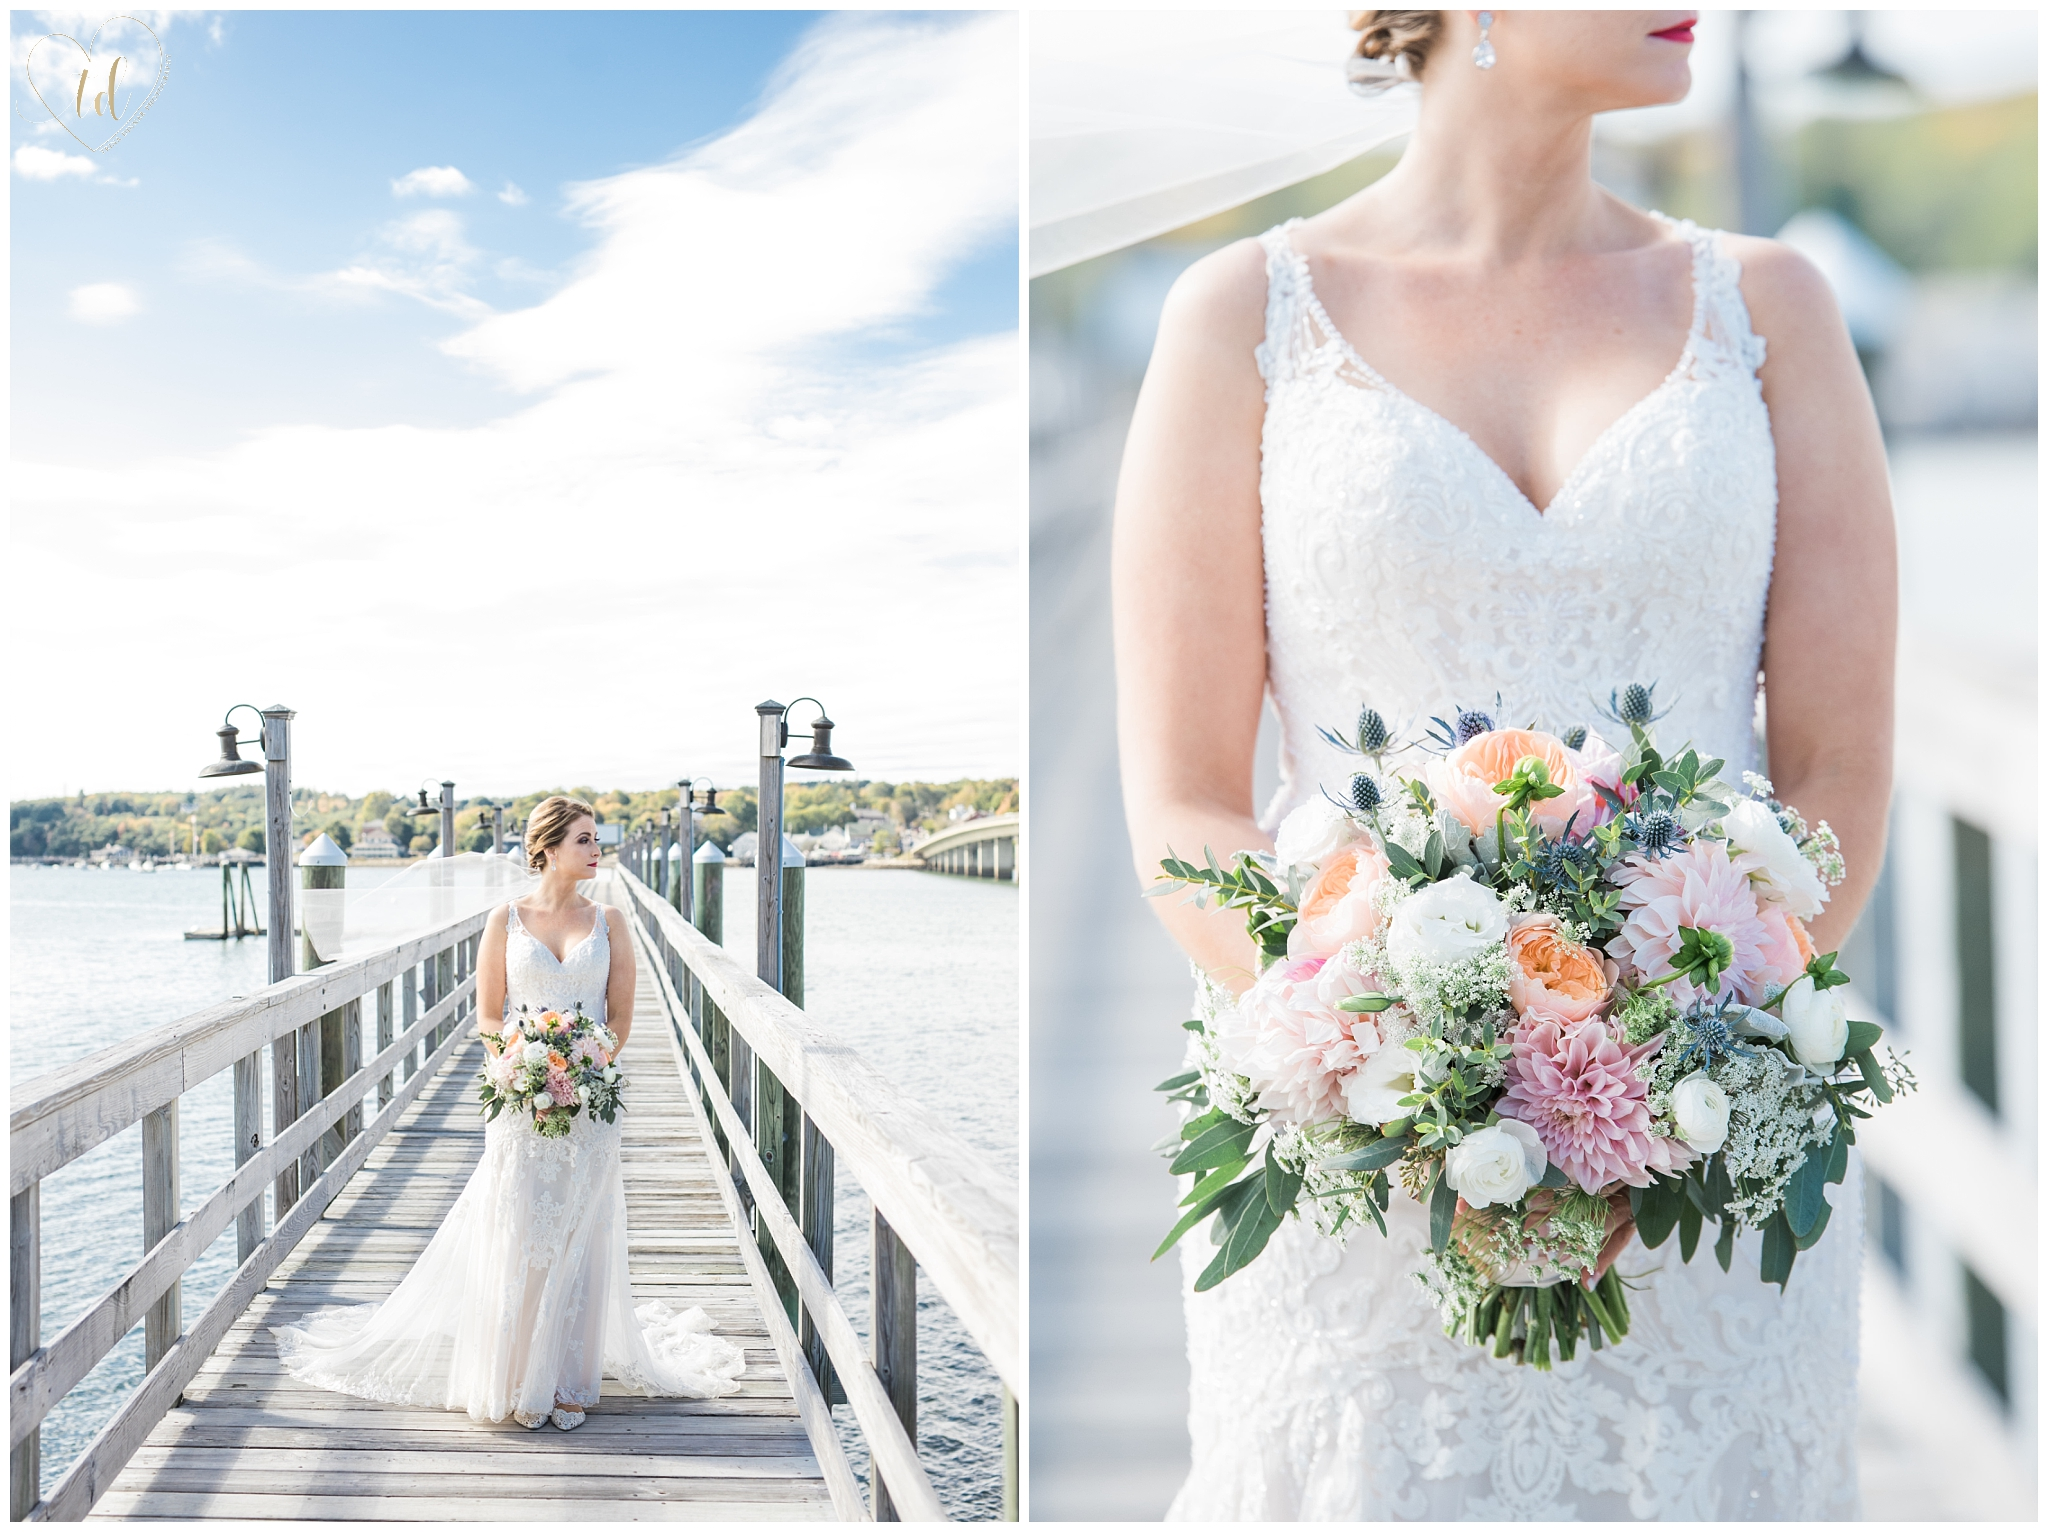 Maine Bridal Portrait Photography at Water's Edge